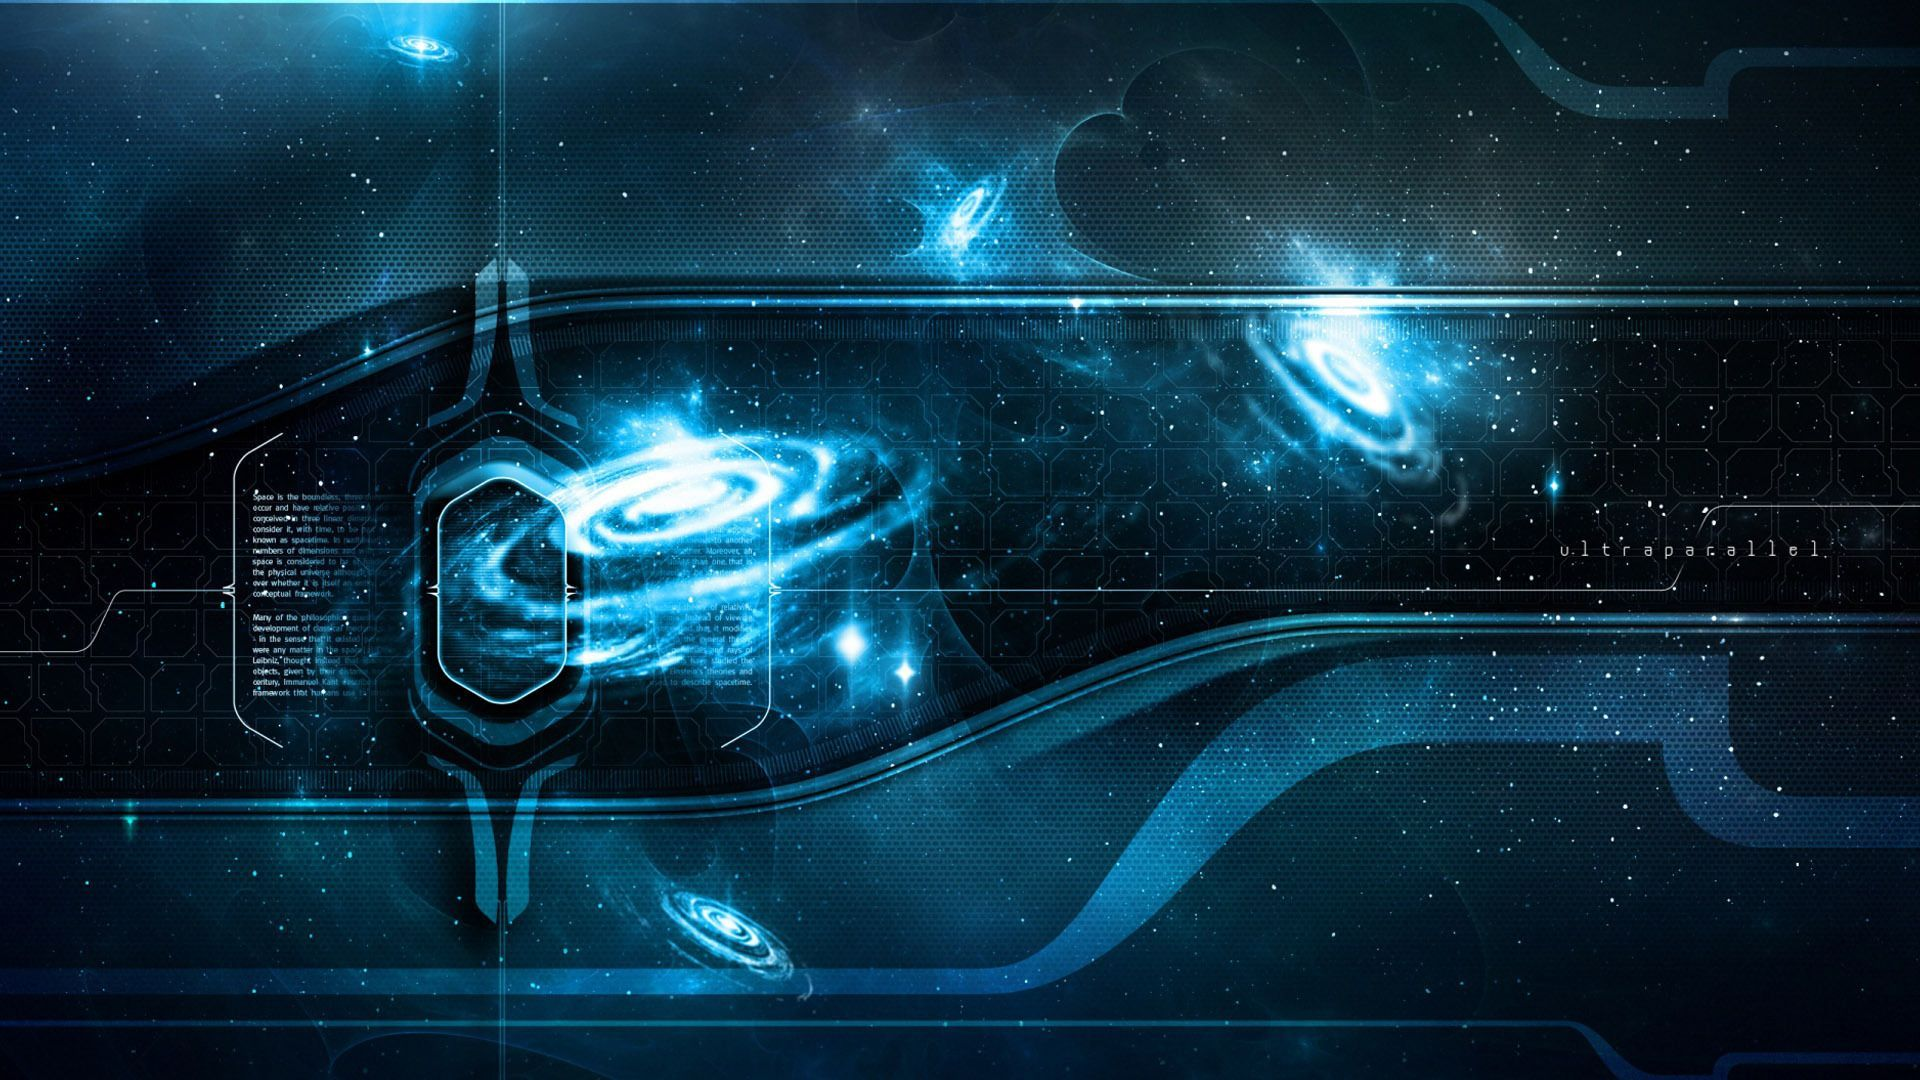 Science Technology Wallpapers Top Free Science Technology Backgrounds Wallpaperaccess